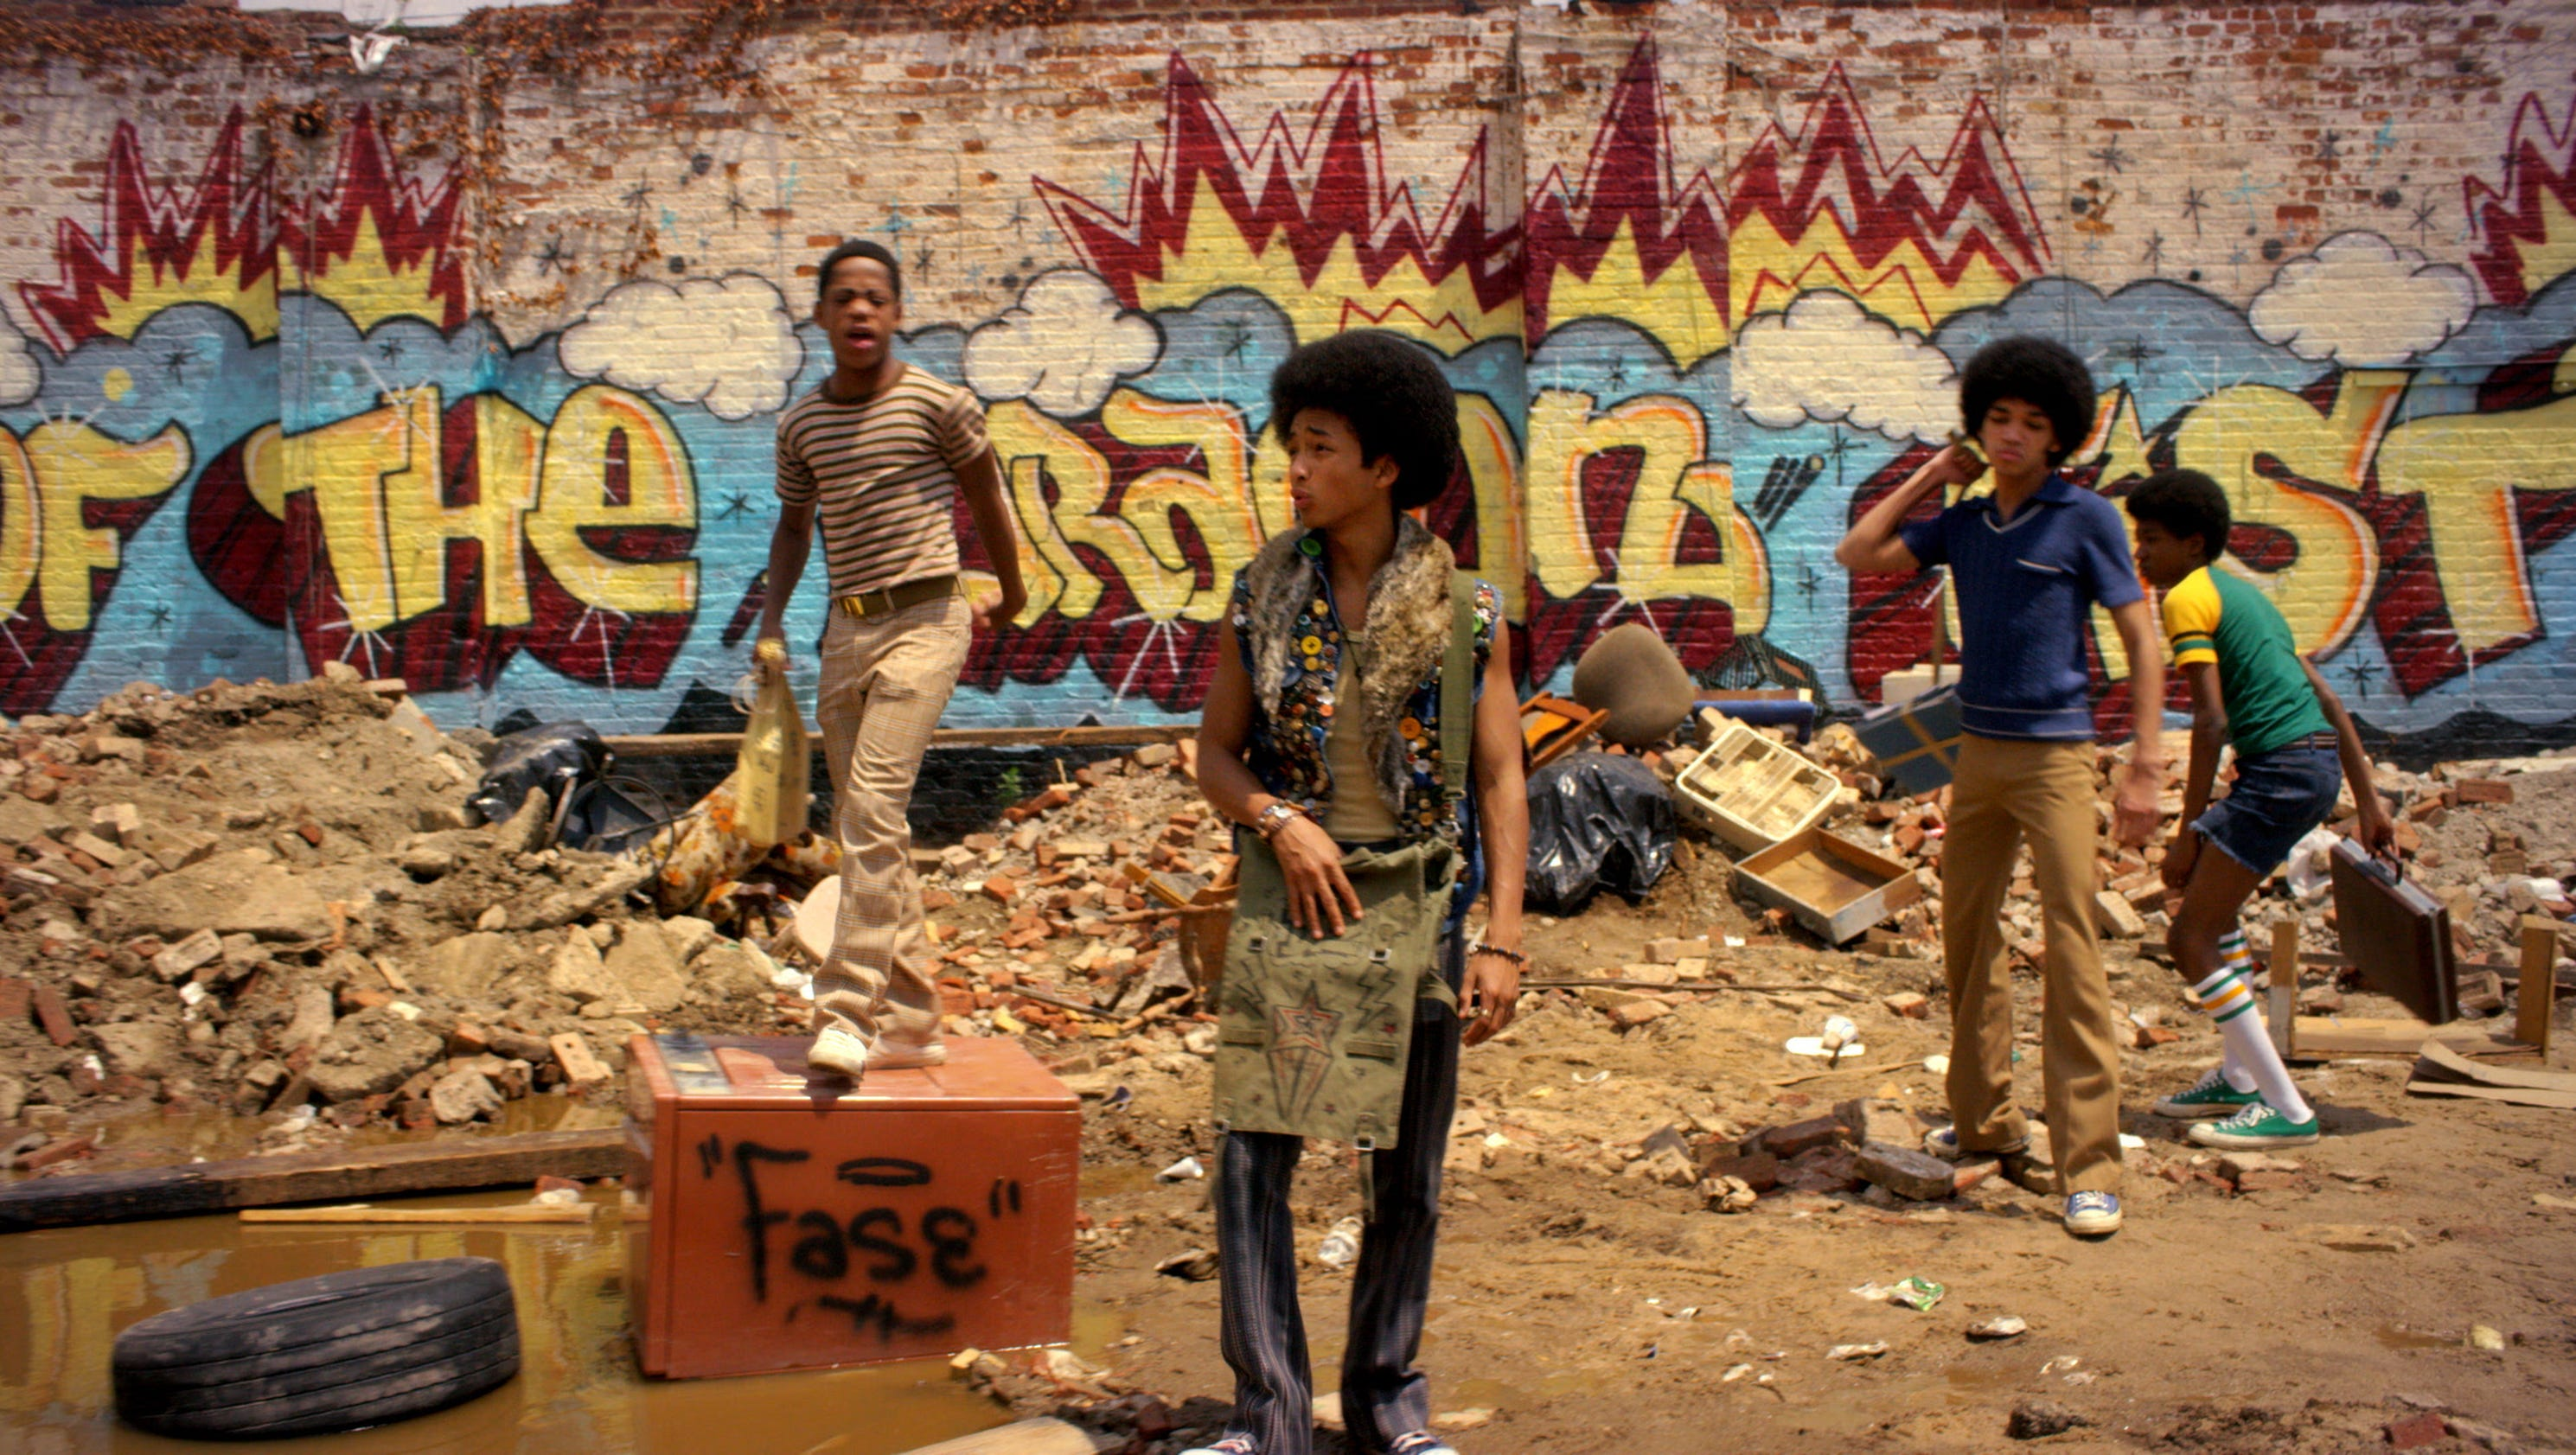 Review: Netflix's 'The Get Down' takes passionate look at the birth of hip-hop